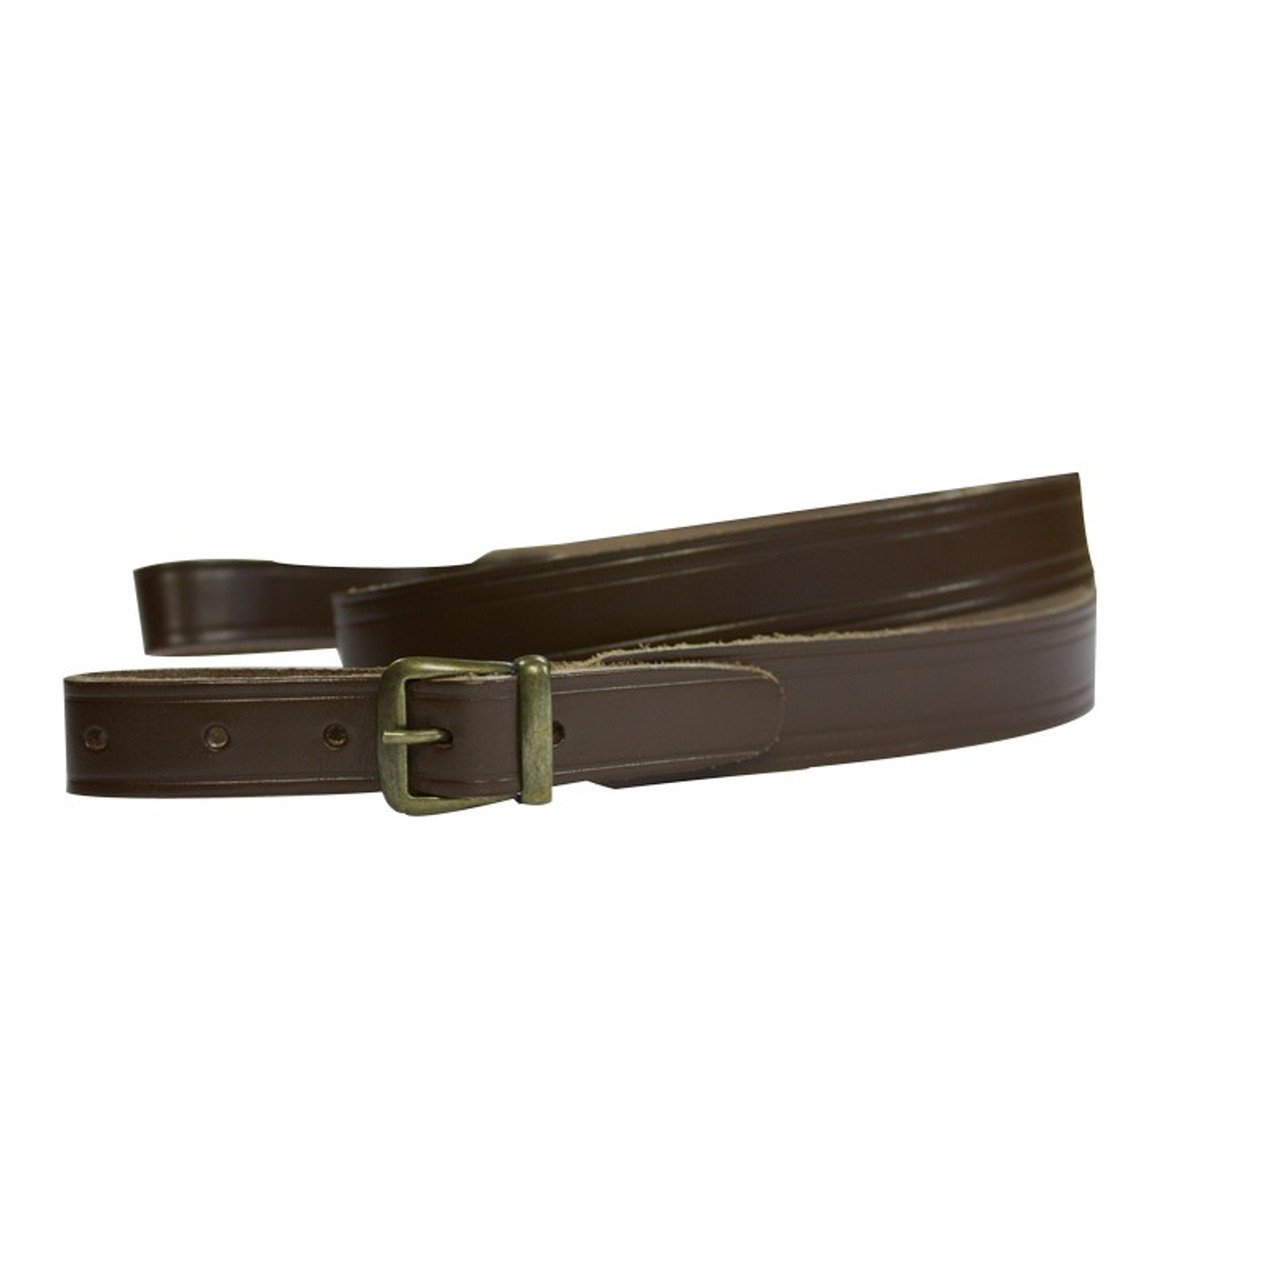 Basic Leather Rifle Sling